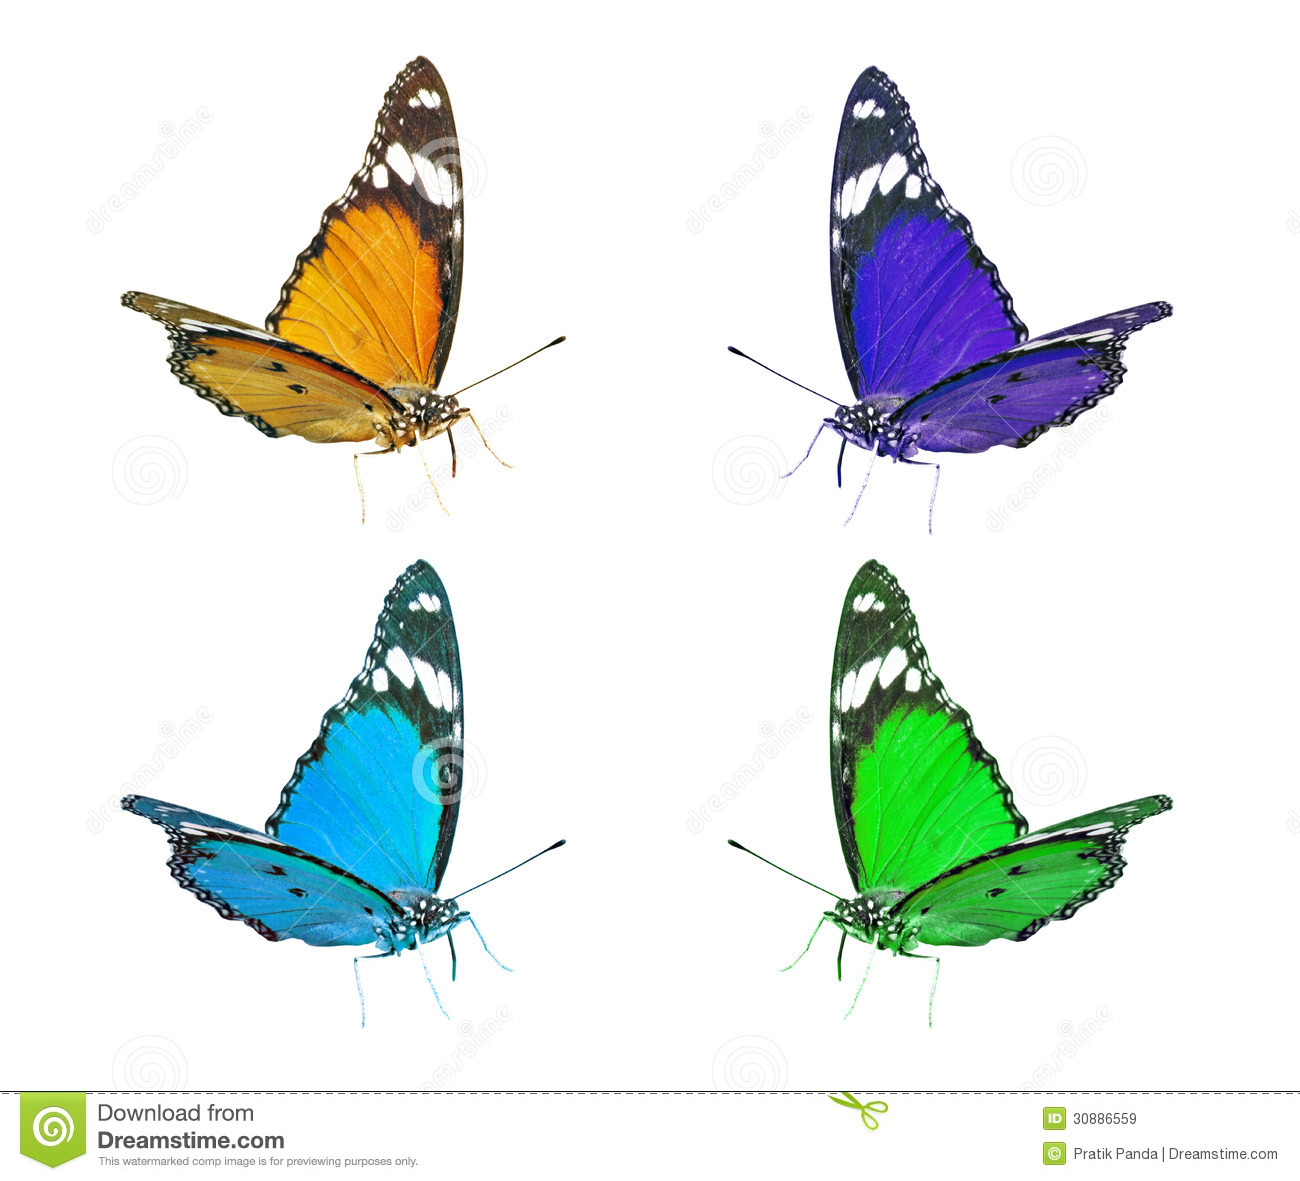 Flying Butterfly Animated Colorful Flying Butterflies Clip Art Royalty Free Stock